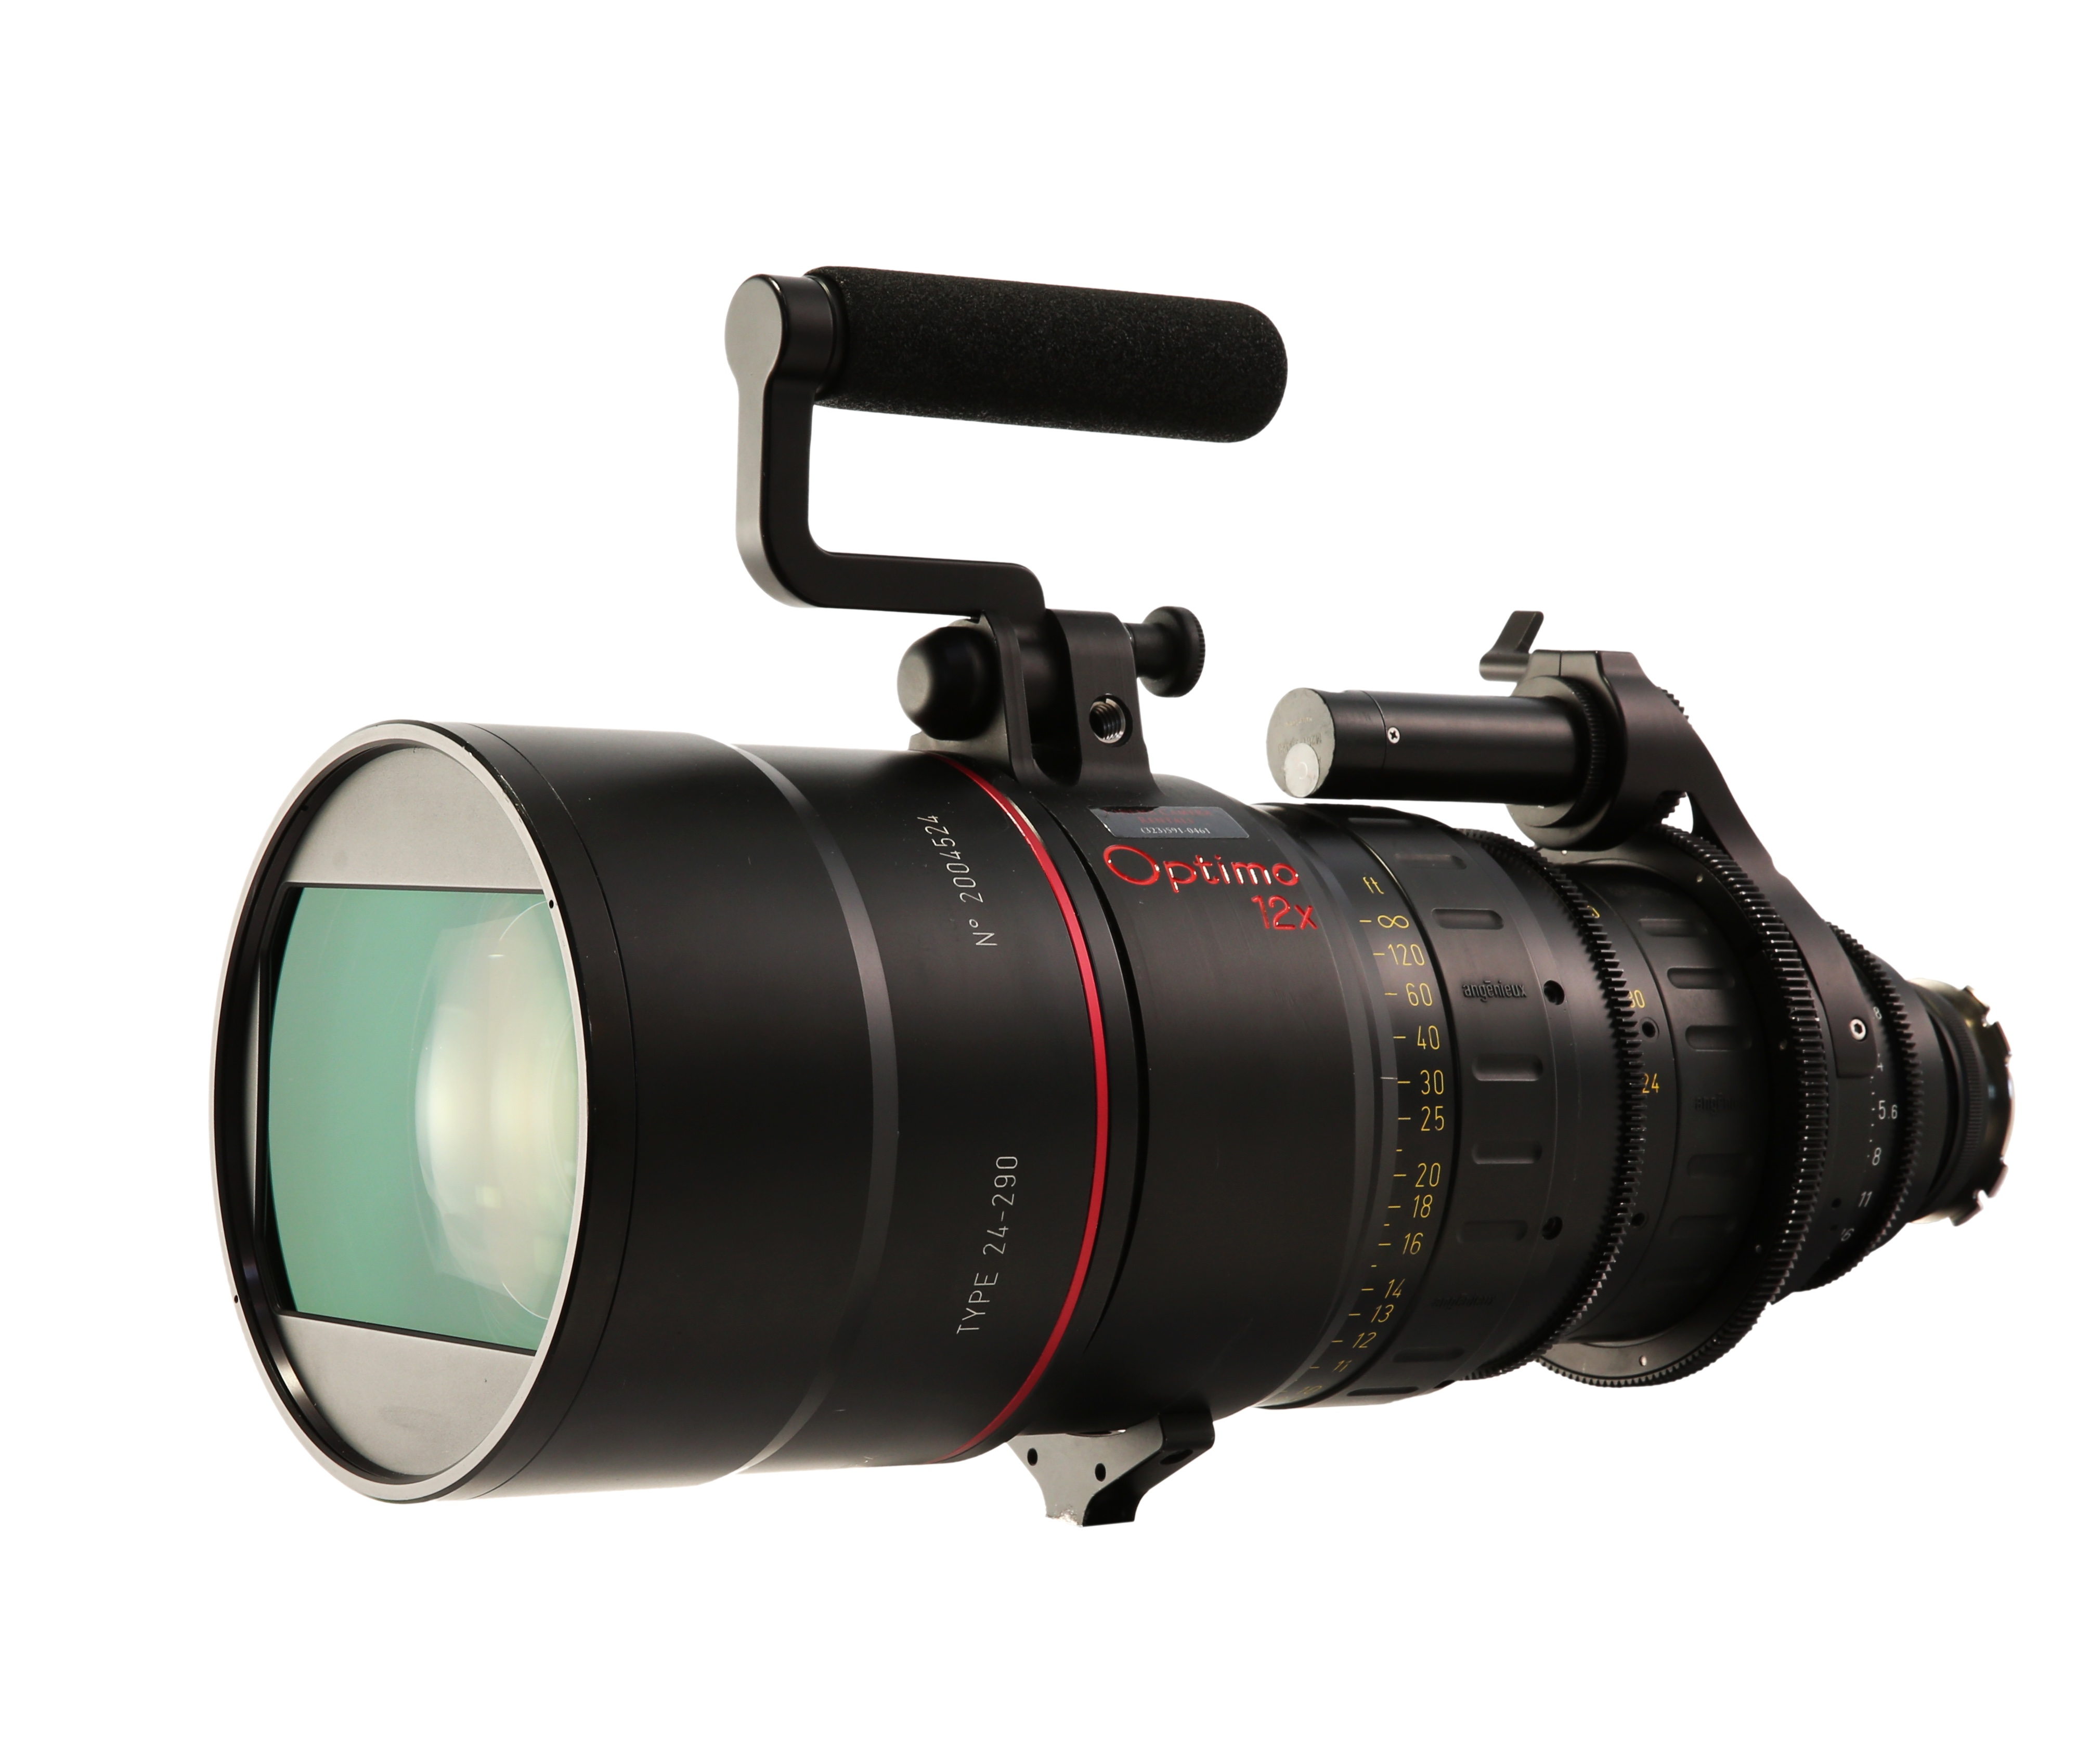 Angenieux Optimo 24-290mm T2.8 Zoom